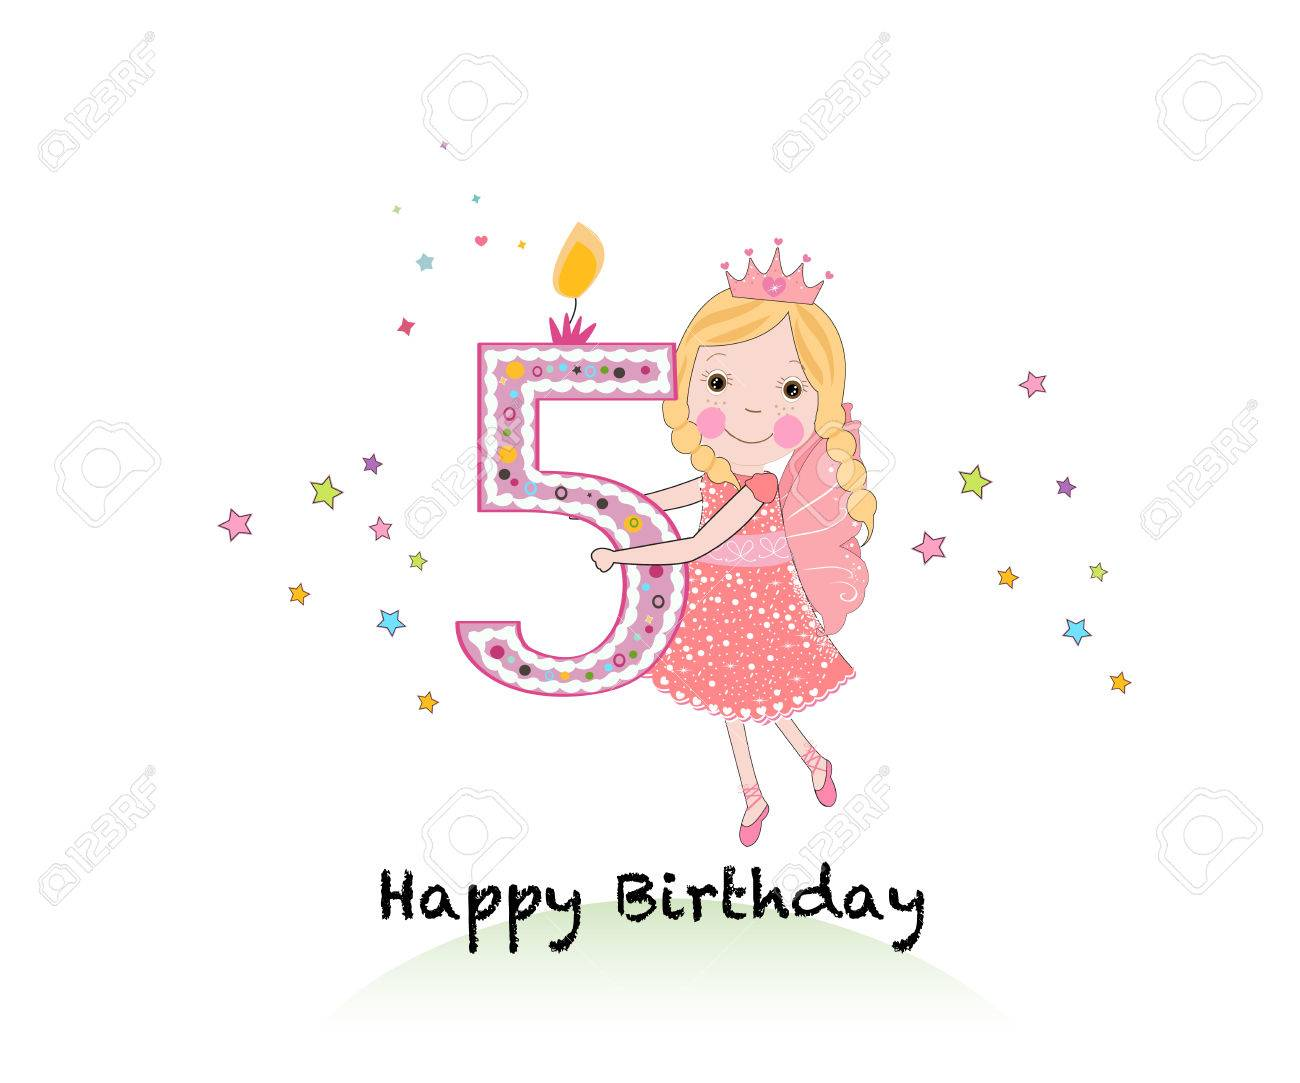 Happy Fifth Birthday Candle Girl Greeting Card With Cute Fairy